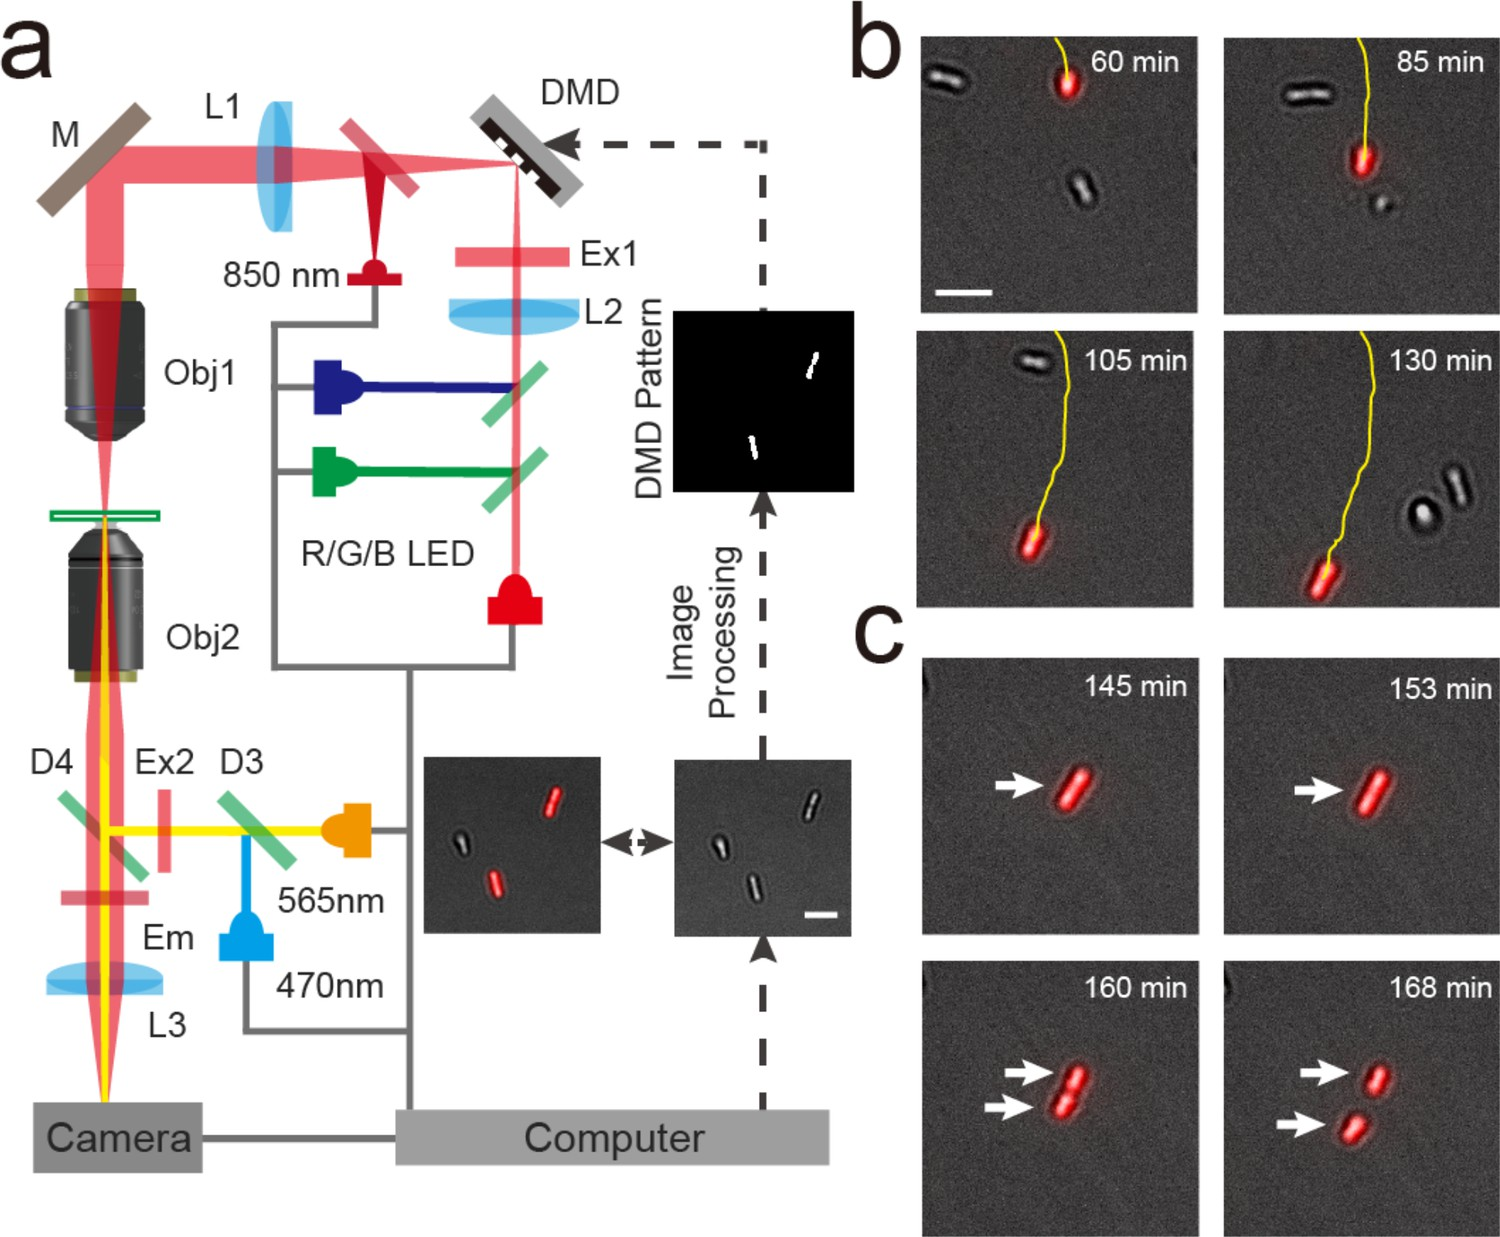 Heterogeneity in surface sensing suggests a division of labor in